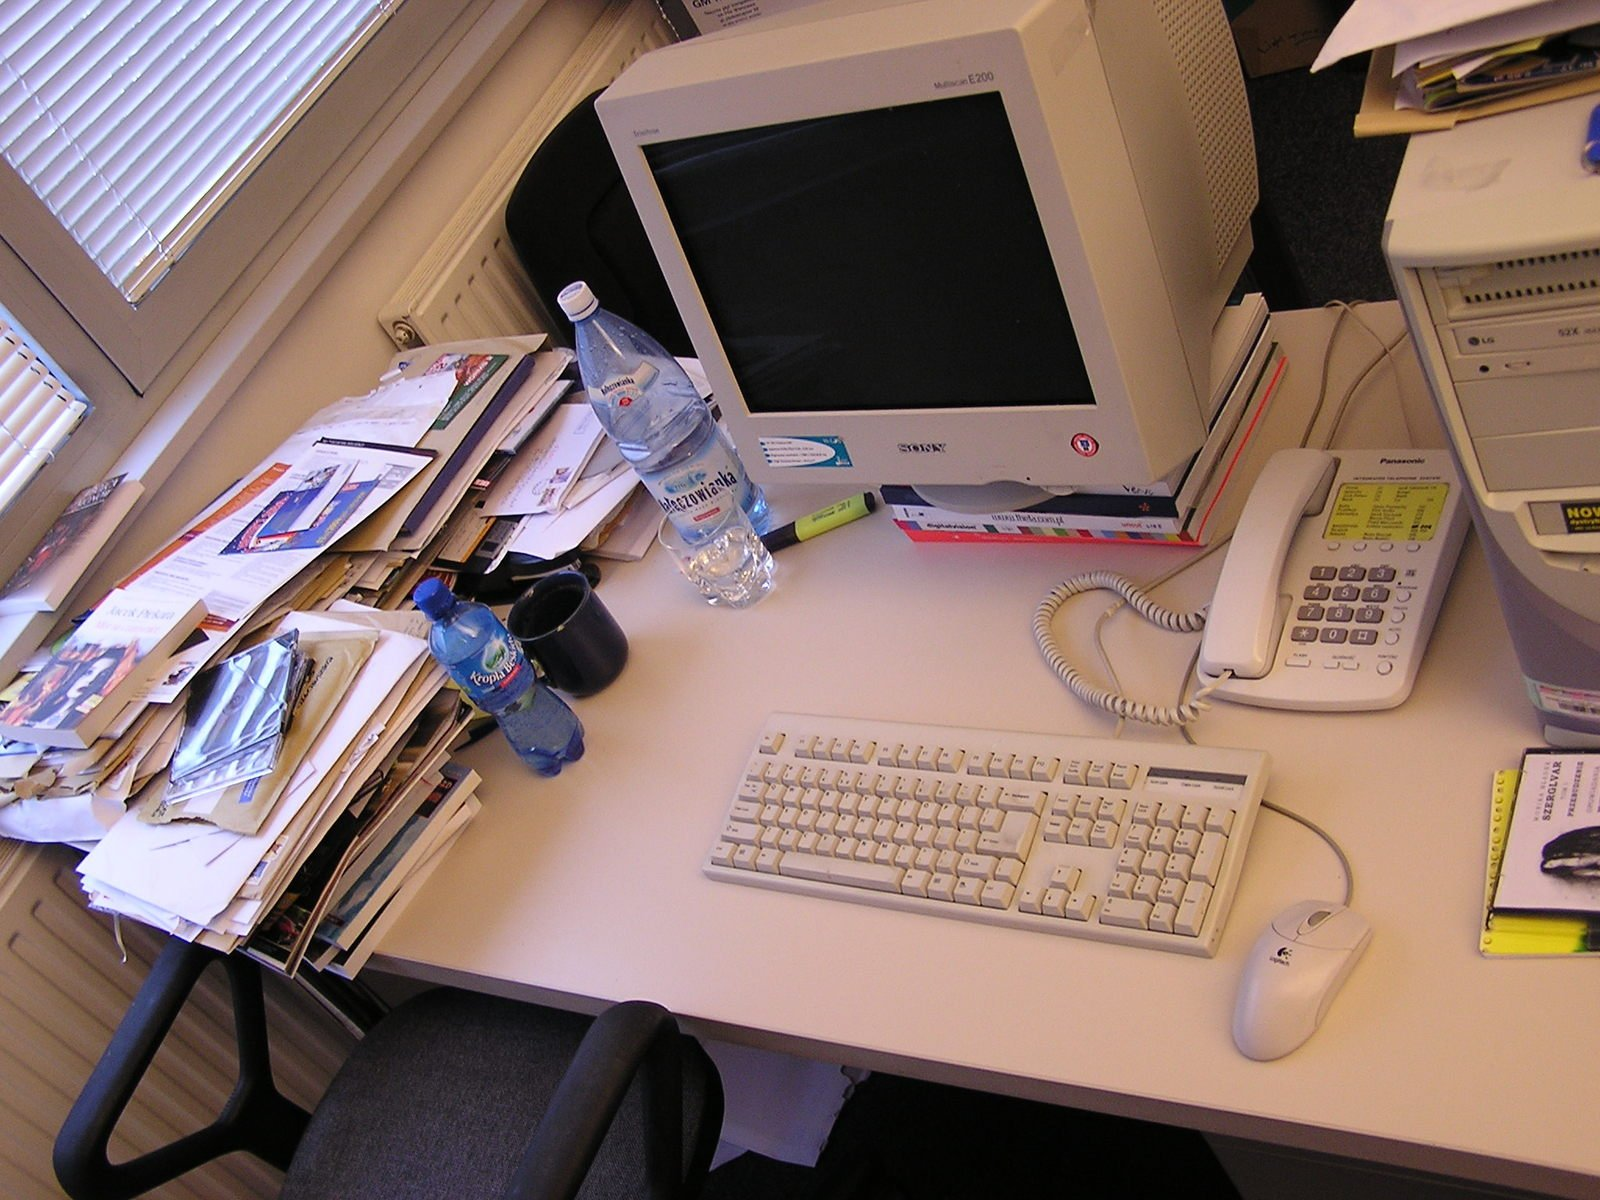 A messy desk